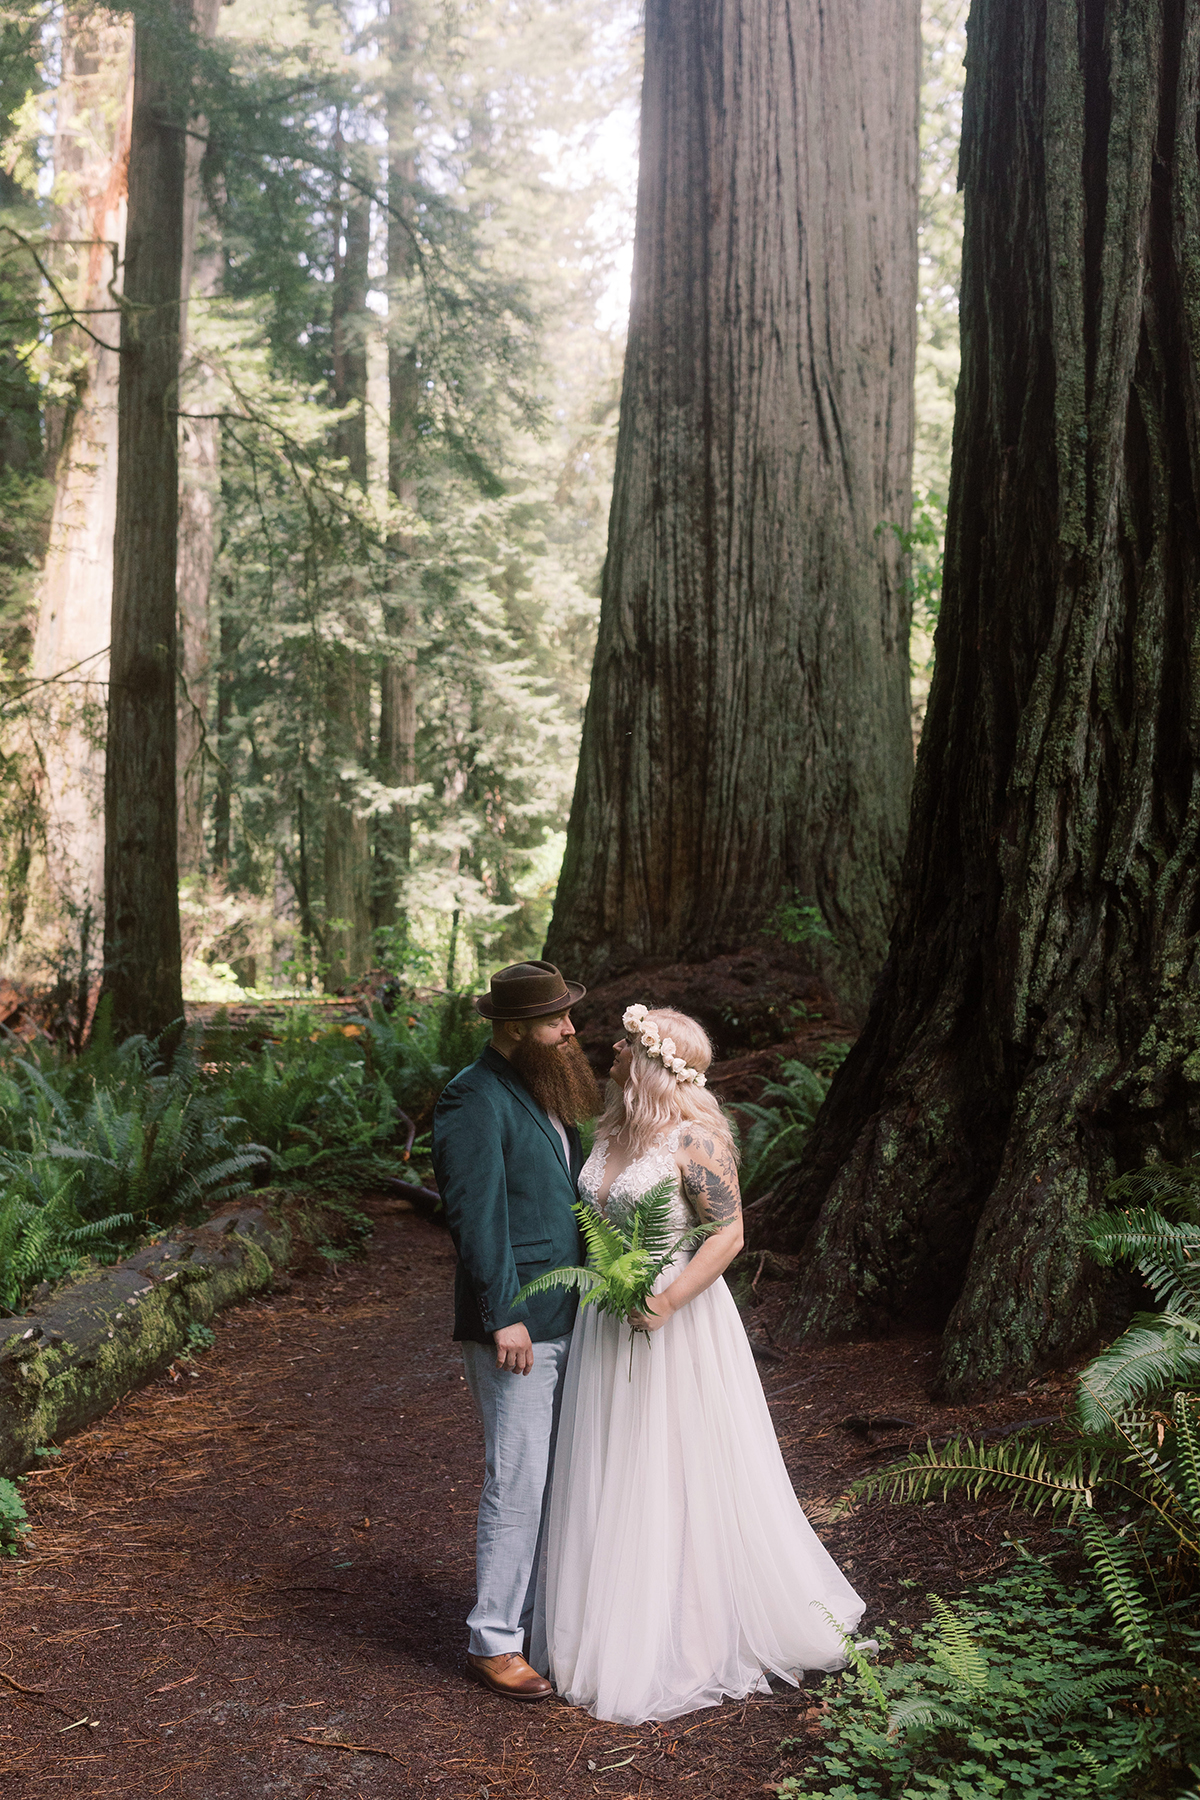 Prairie-Creek-Redwoods-State-Park-wedding-elopement-photos-05